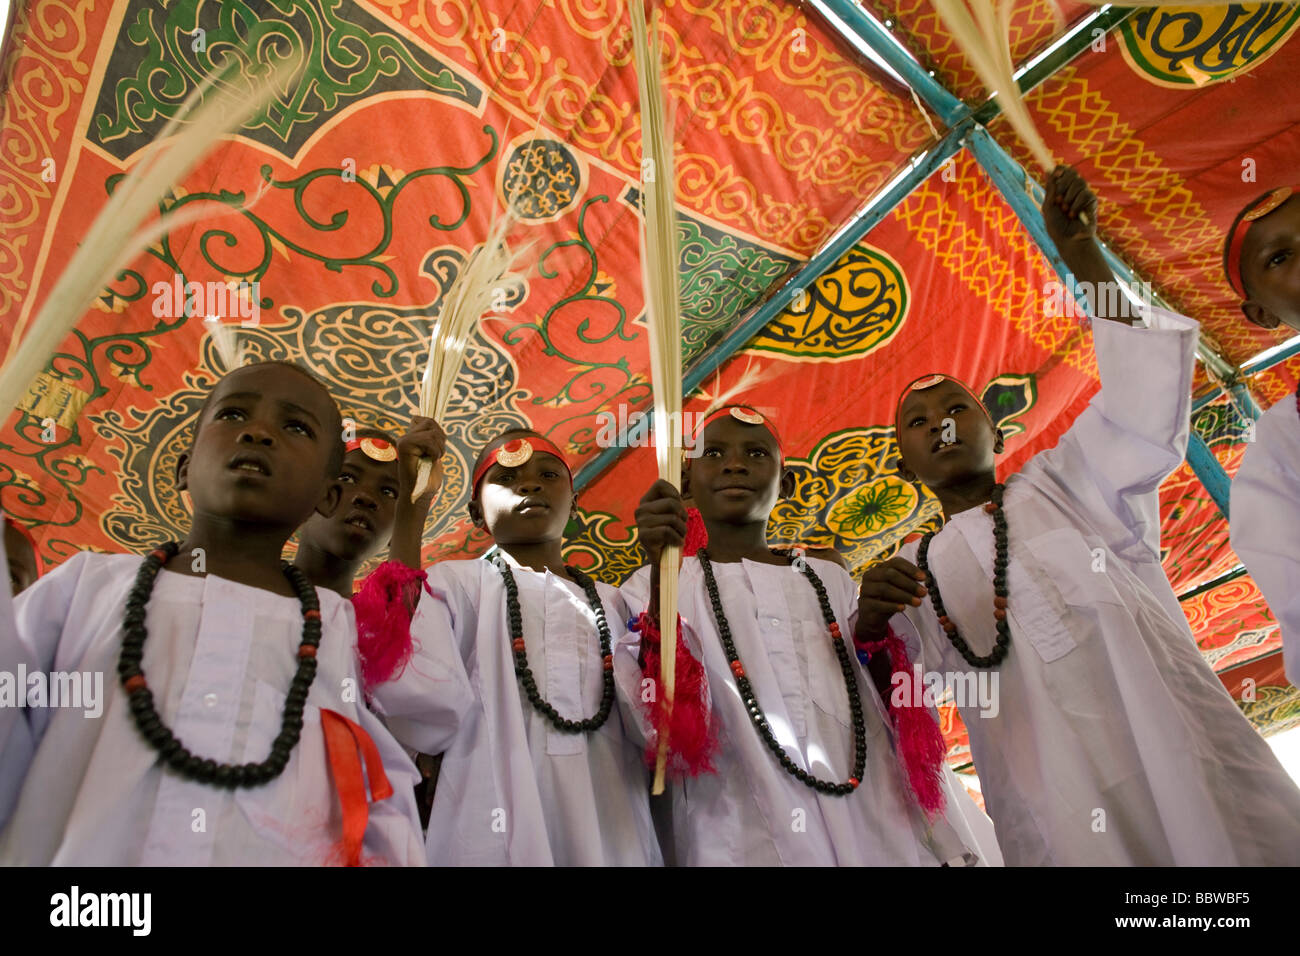 Young boys between the ages of 8 and 13 gather to celebrate a Sudanese rite of passage, the male circumcision. - Stock Image